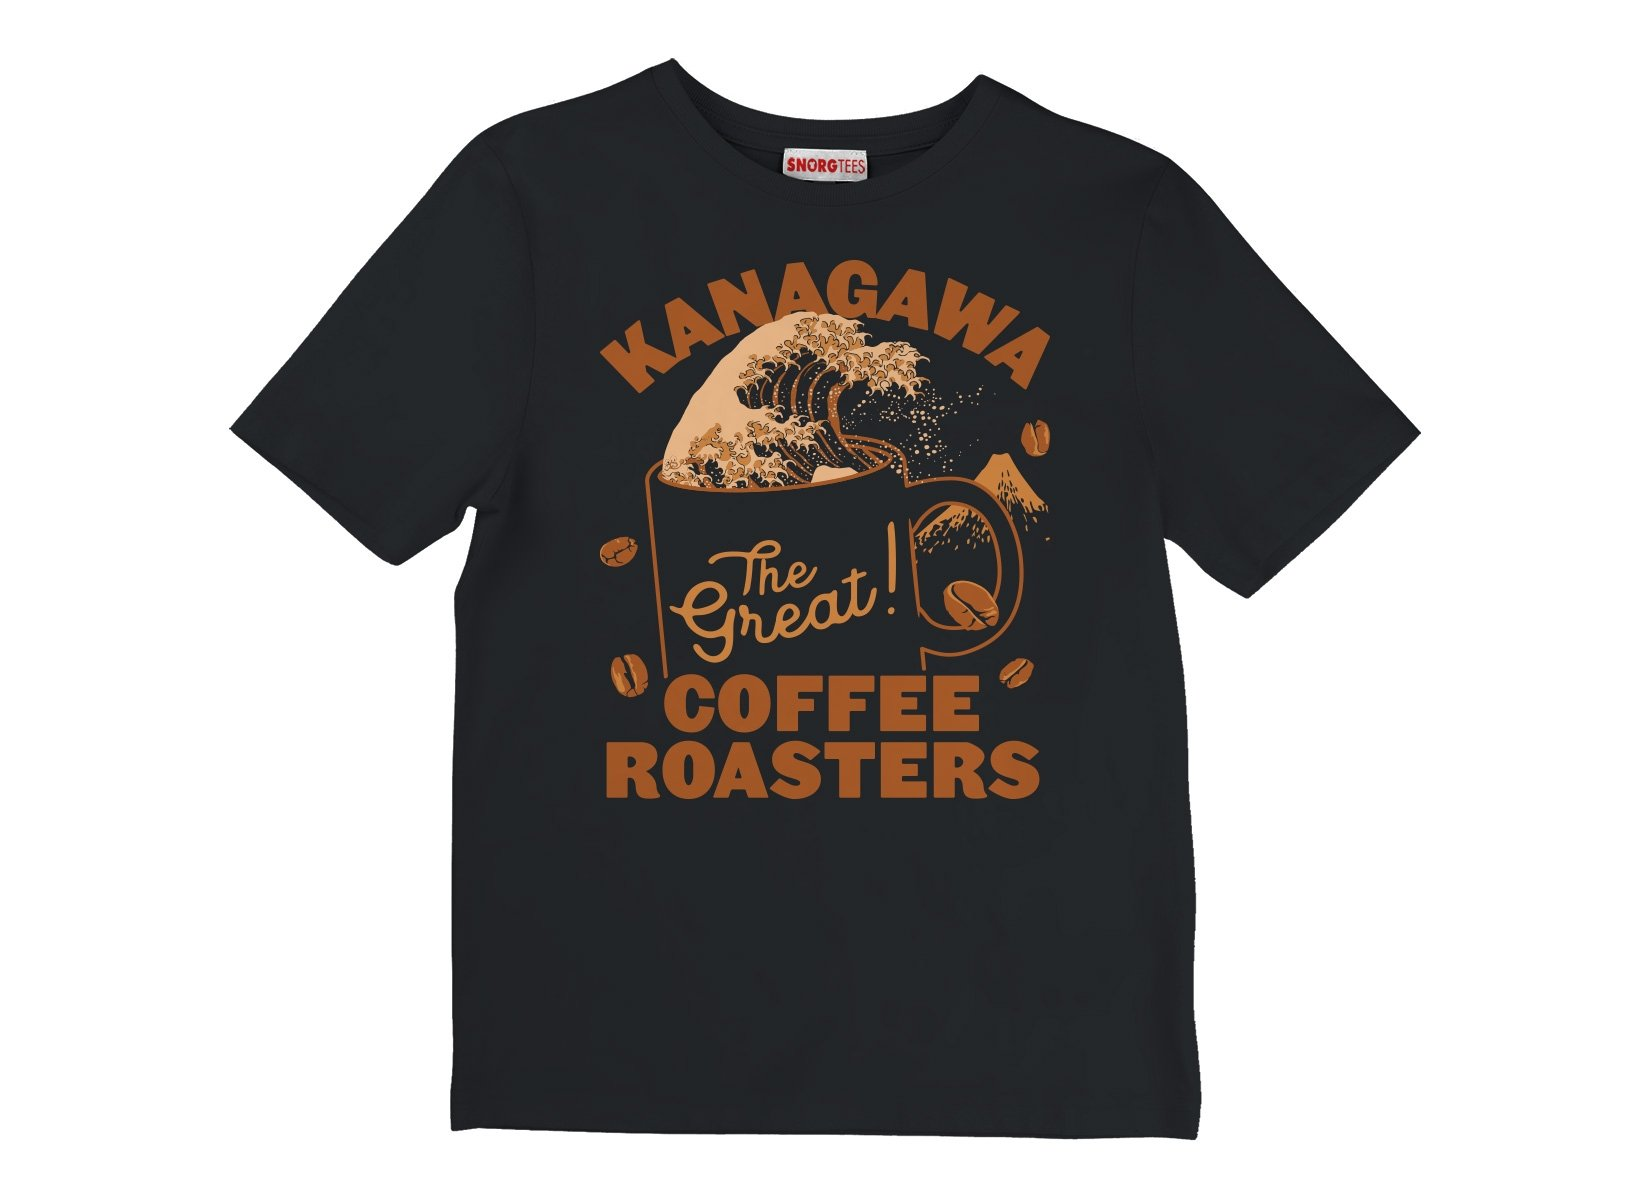 Kanagawa Coffee Roasters on Kids T-Shirt